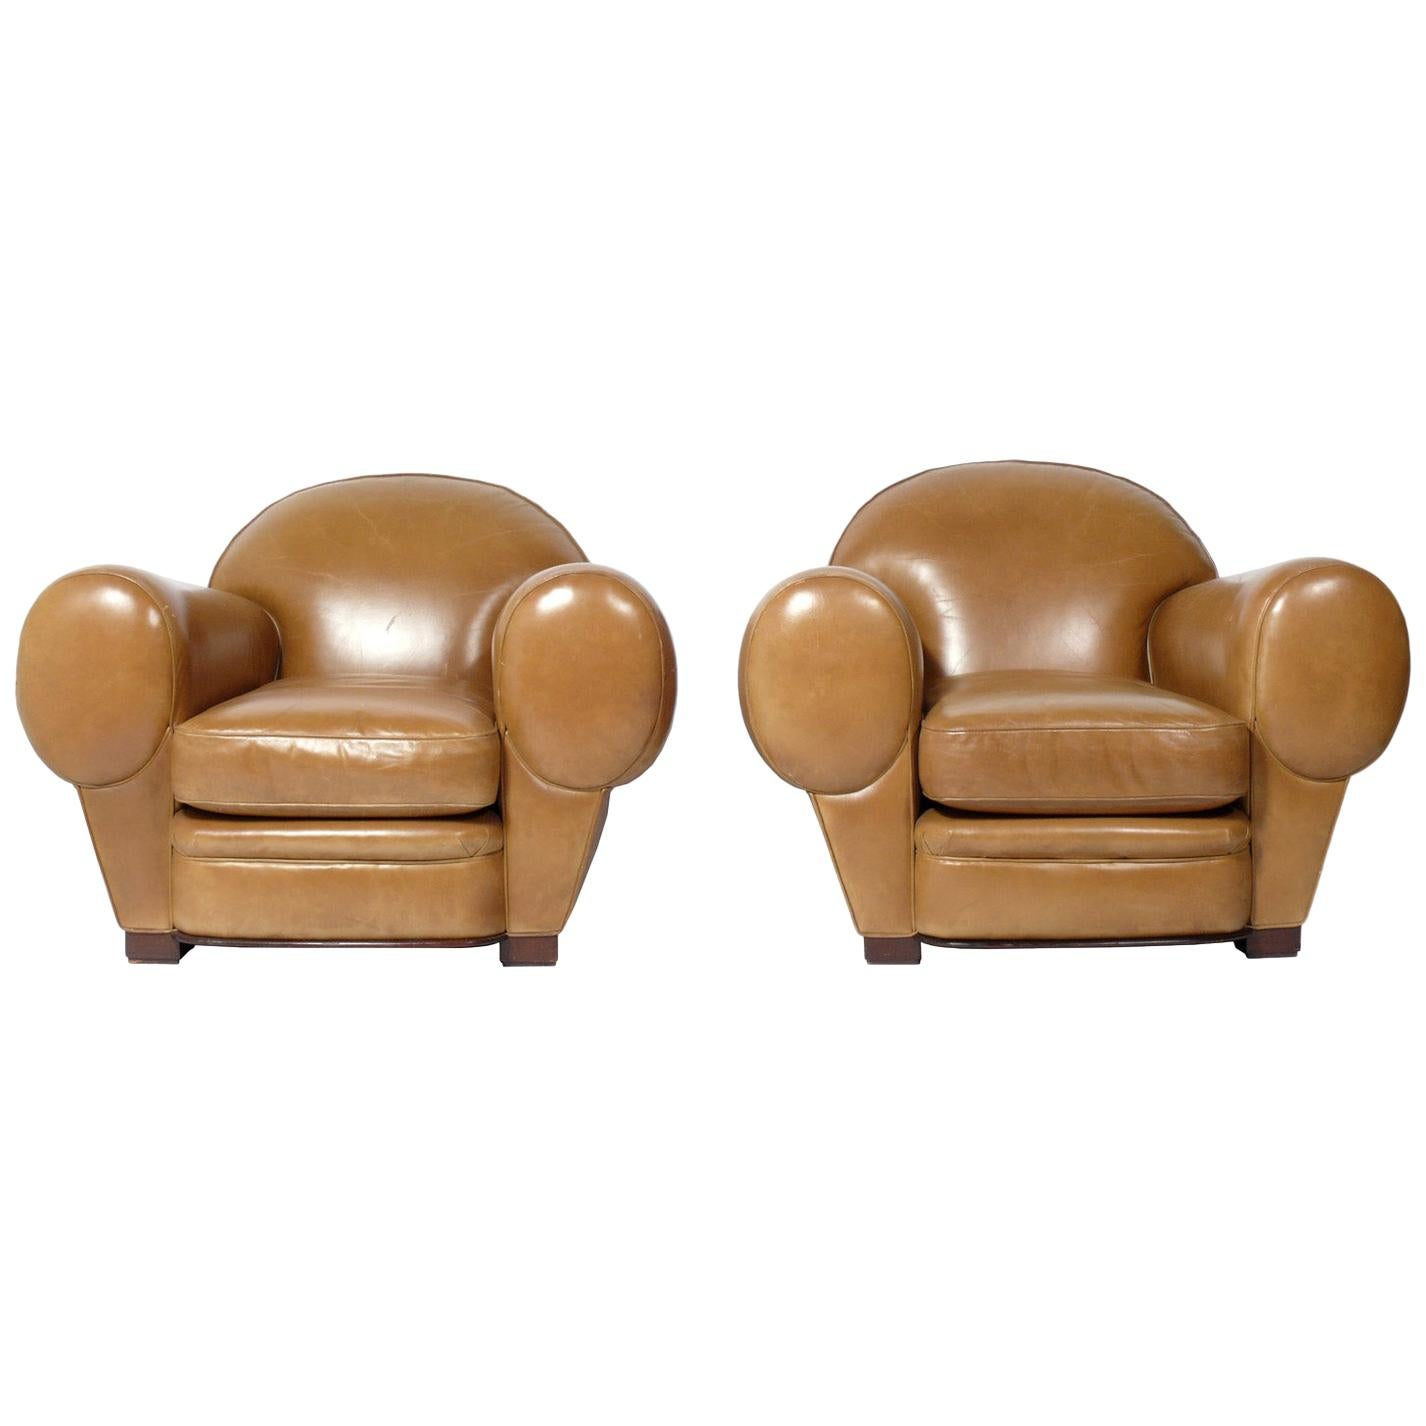 """Pair of Art Deco Style """"Elephant"""" Club Chairs"""